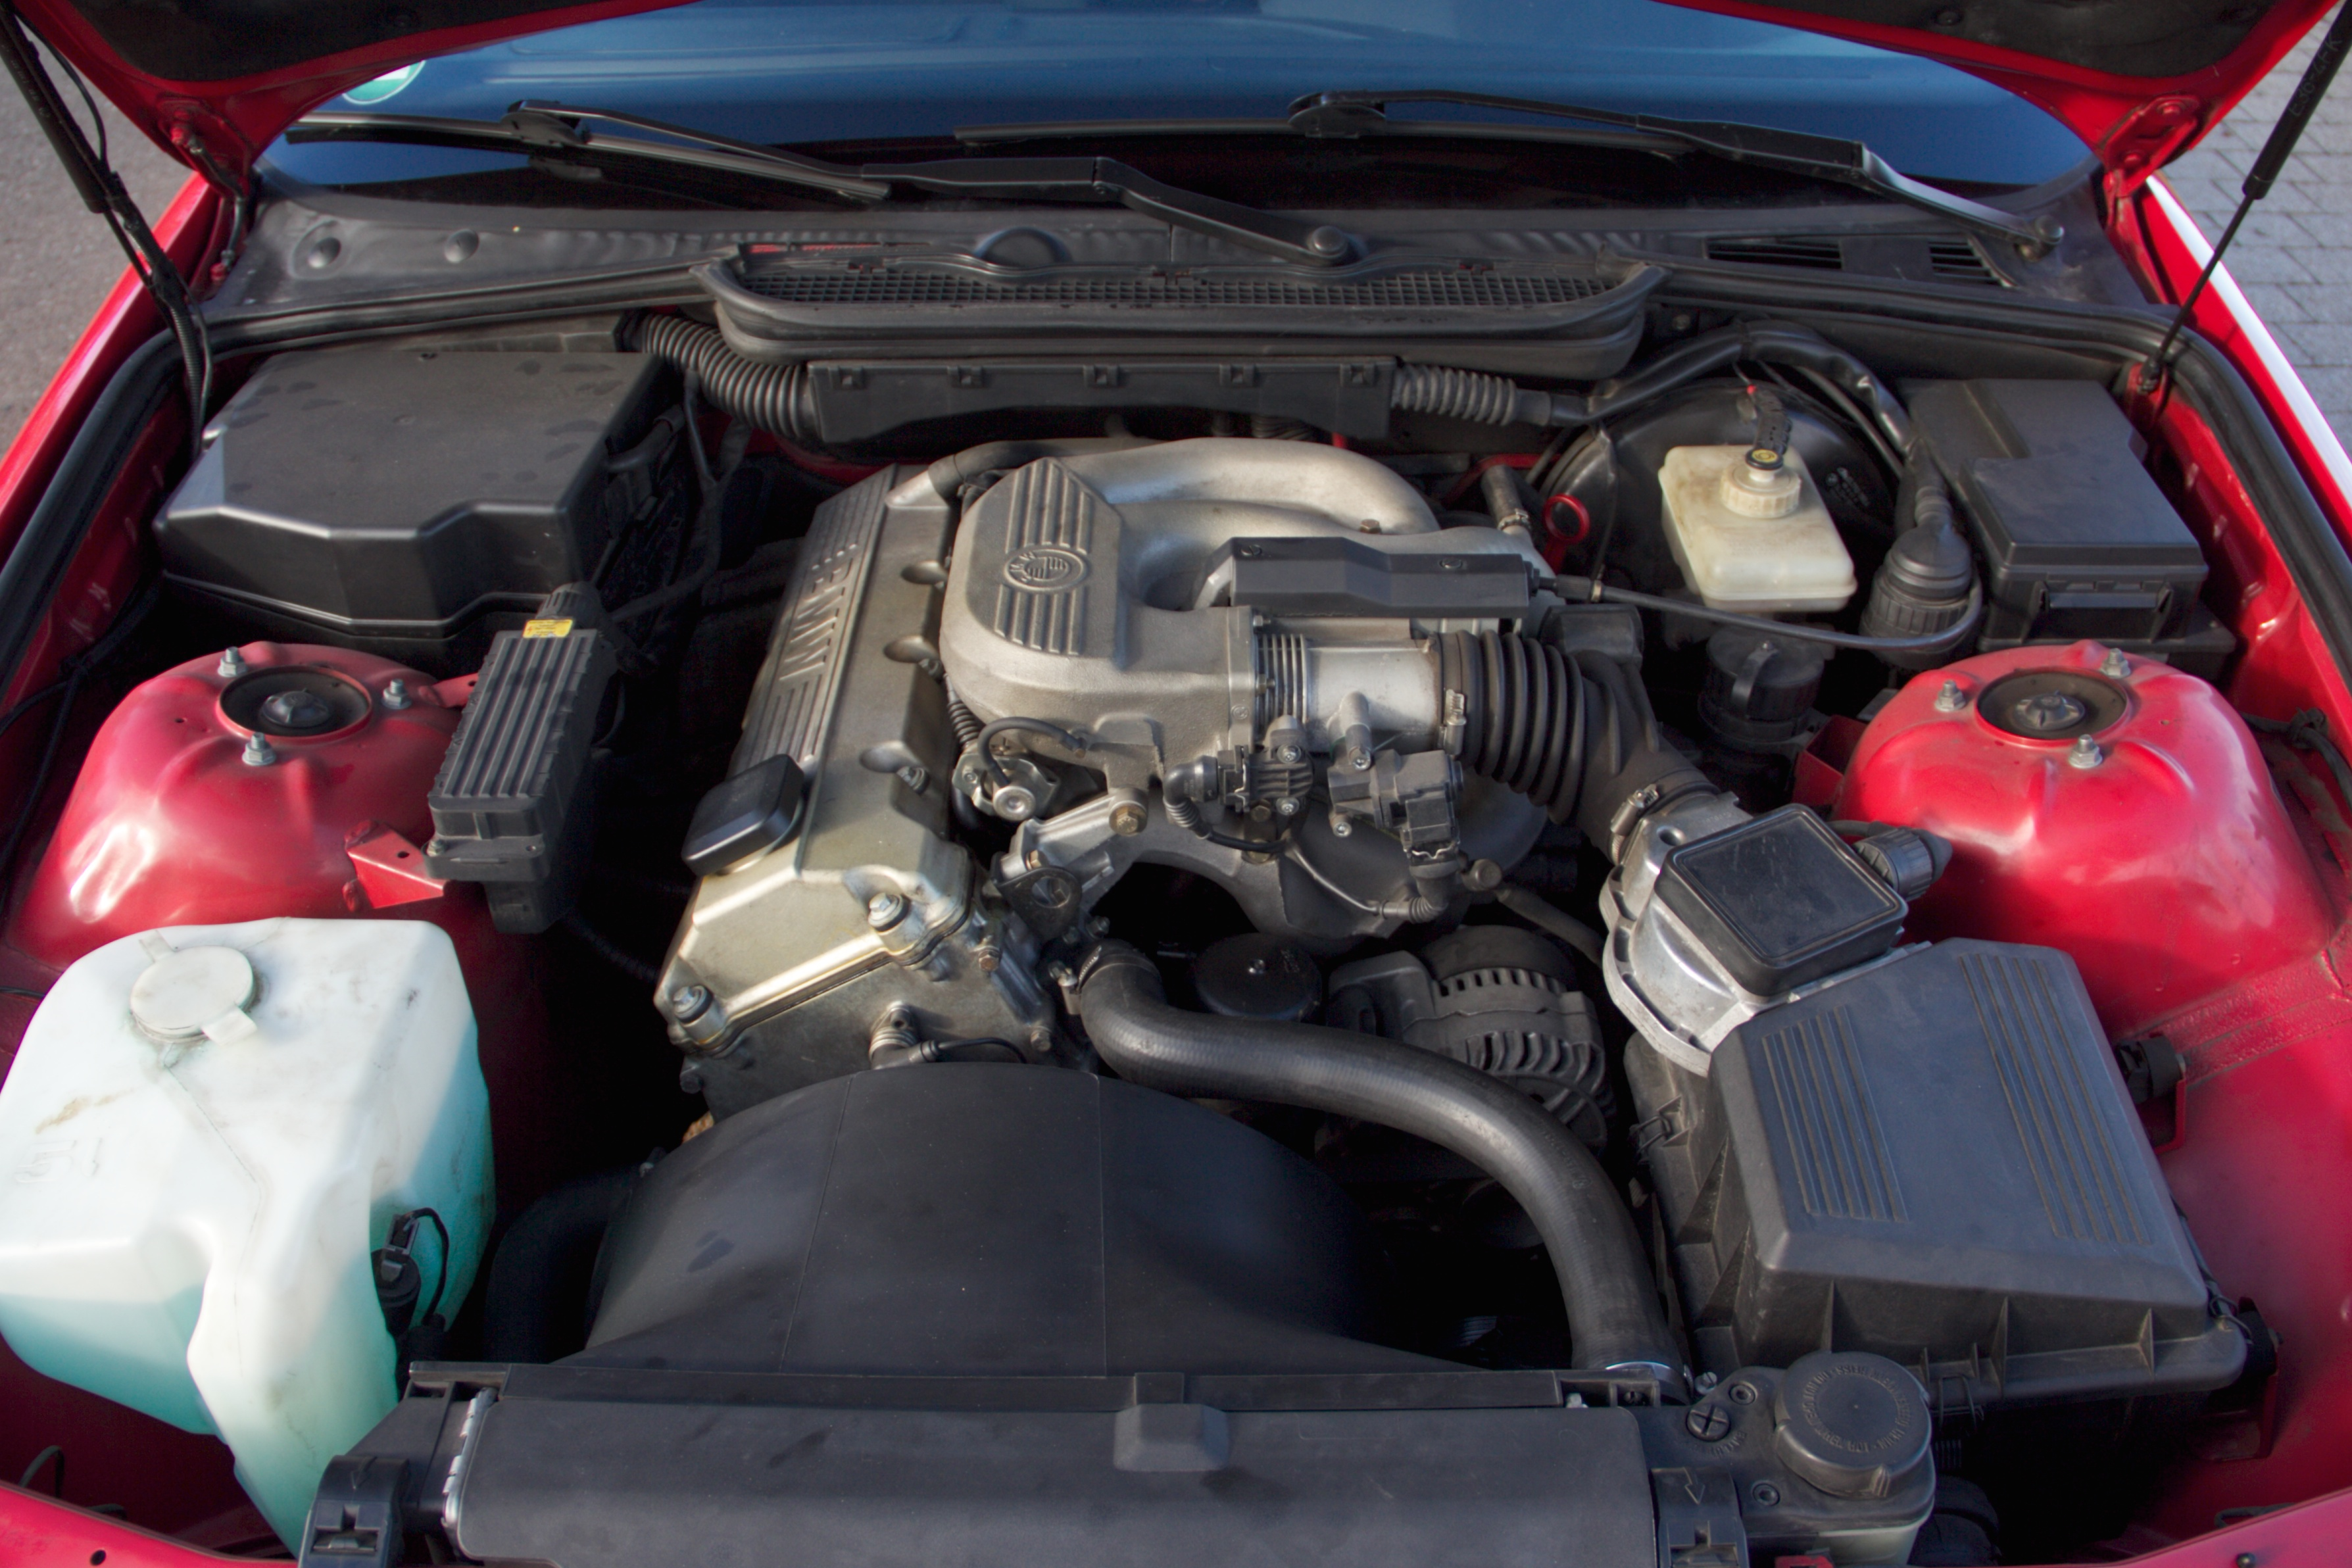 File Bmw M43 Engine 316i Compact 1996 Jpg Wikimedia Commons